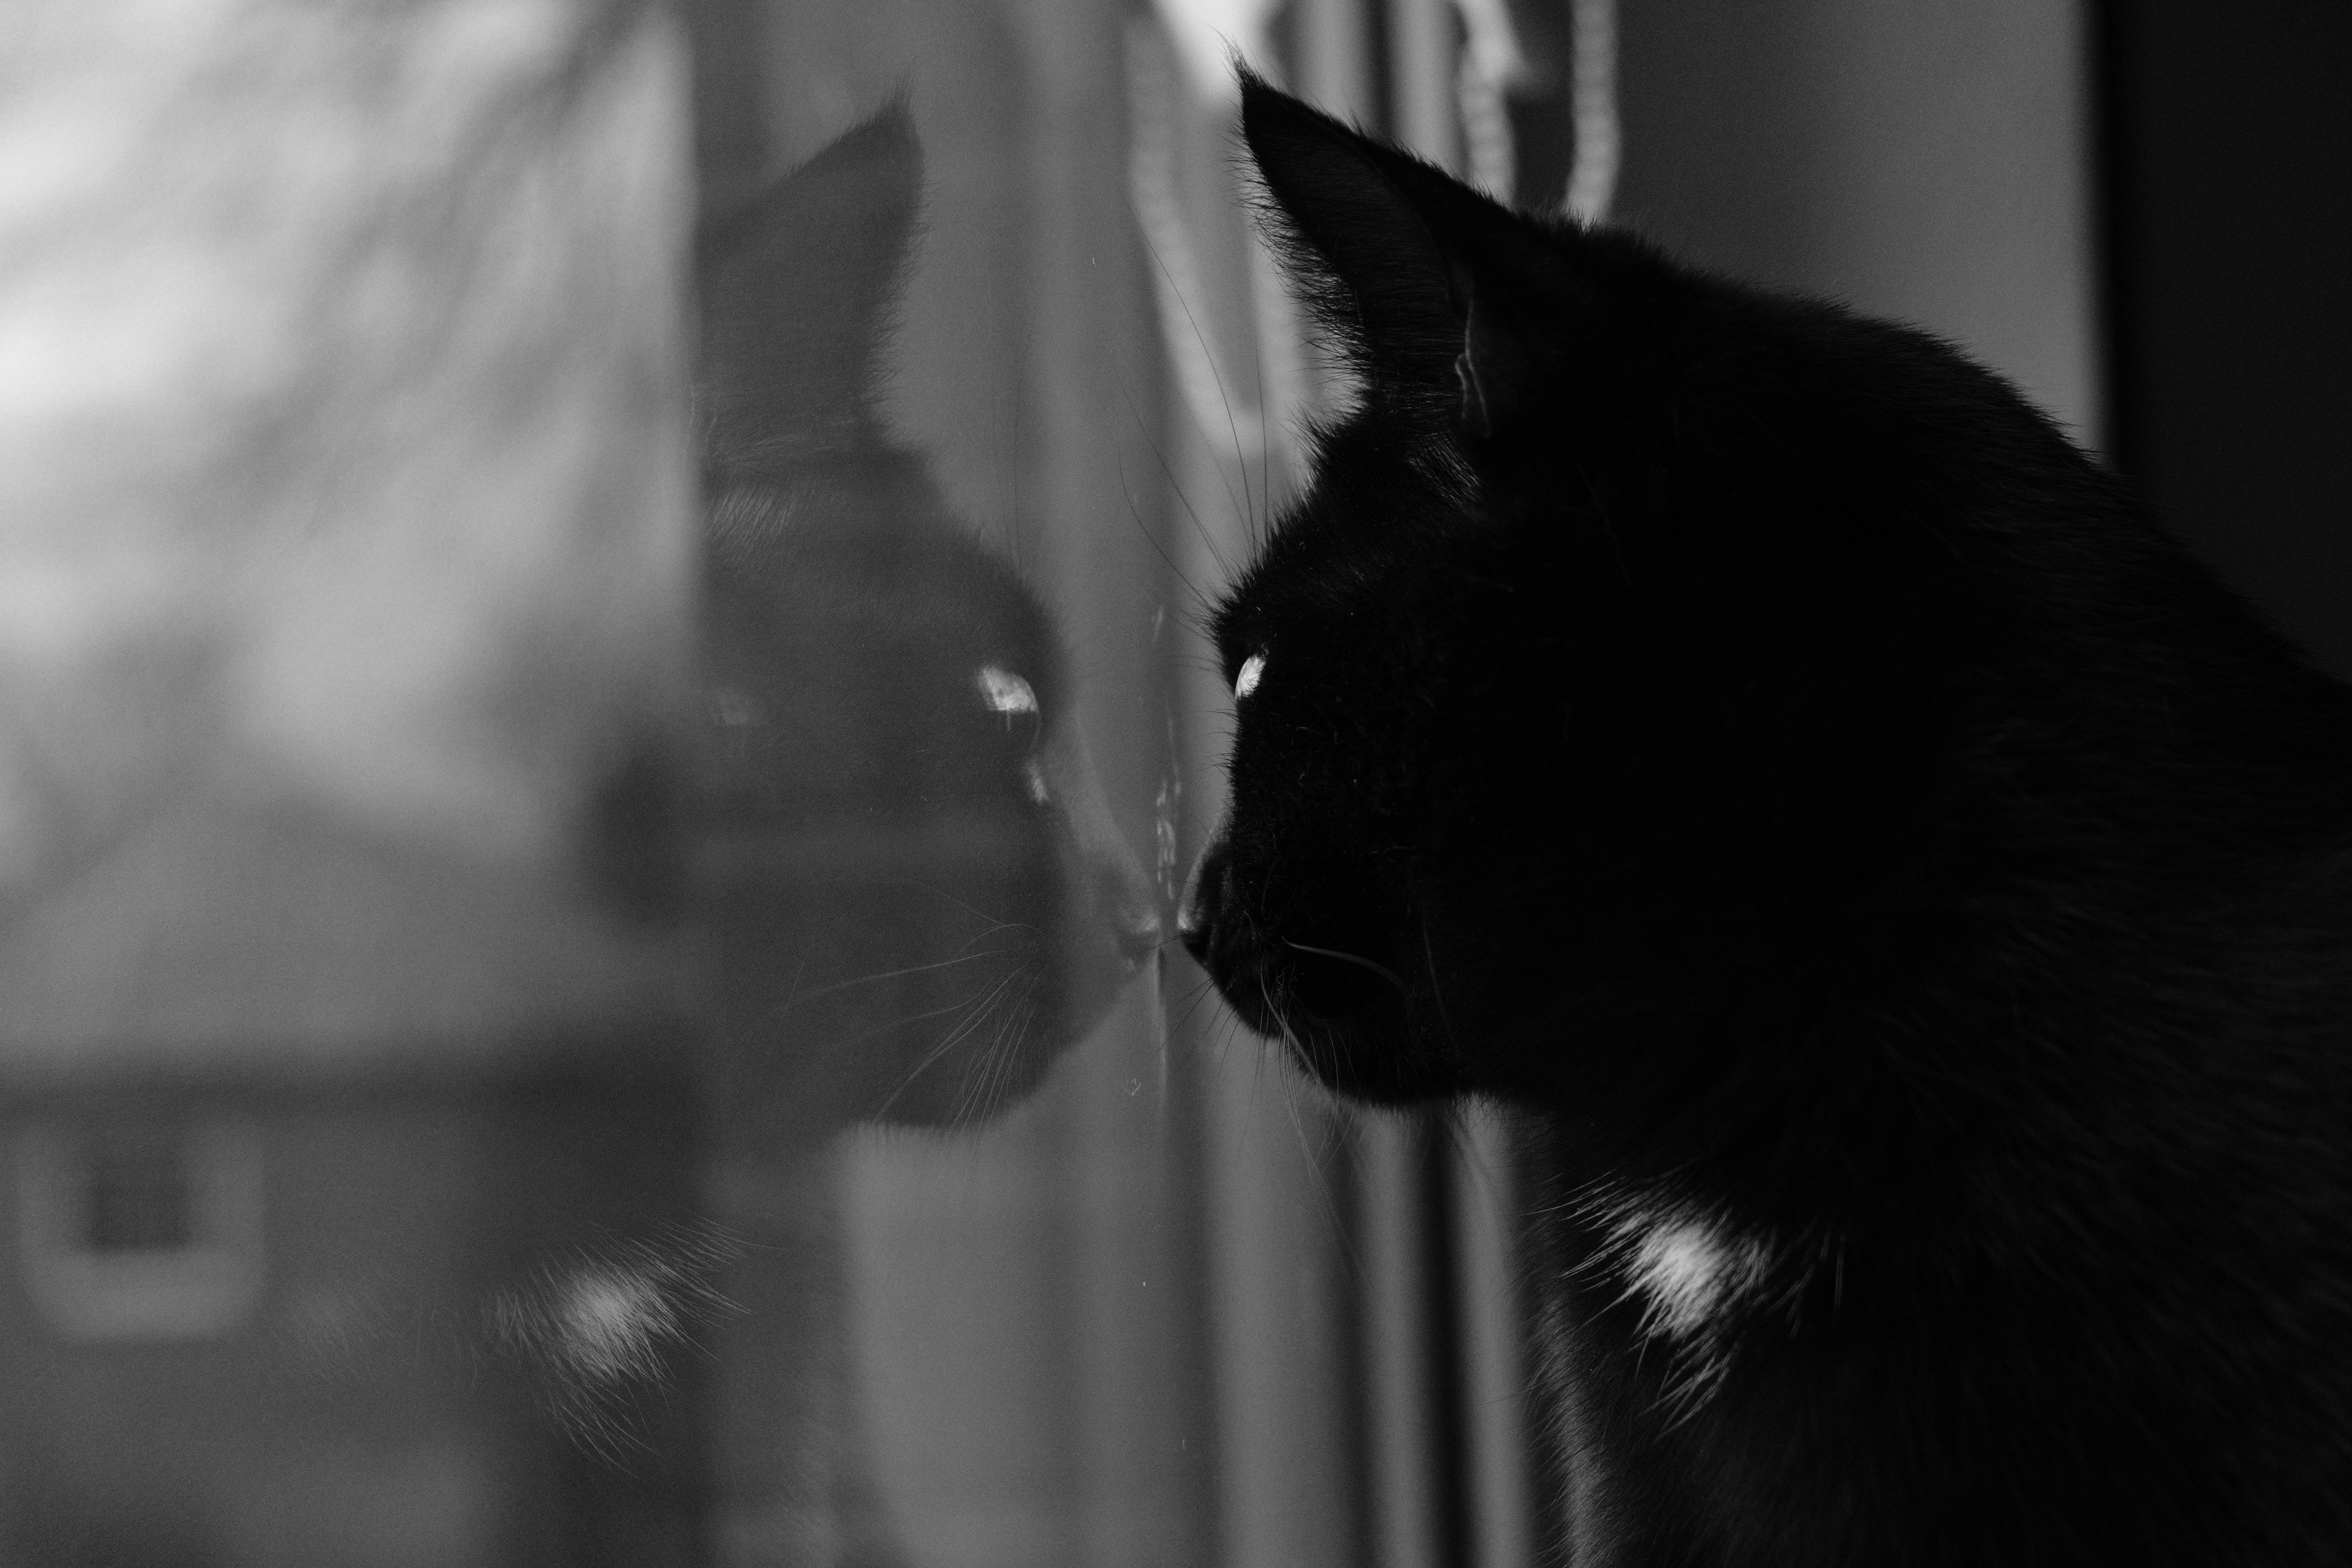 Mipha to the window, Cat, Collar, Reflection, Window, HQ Photo